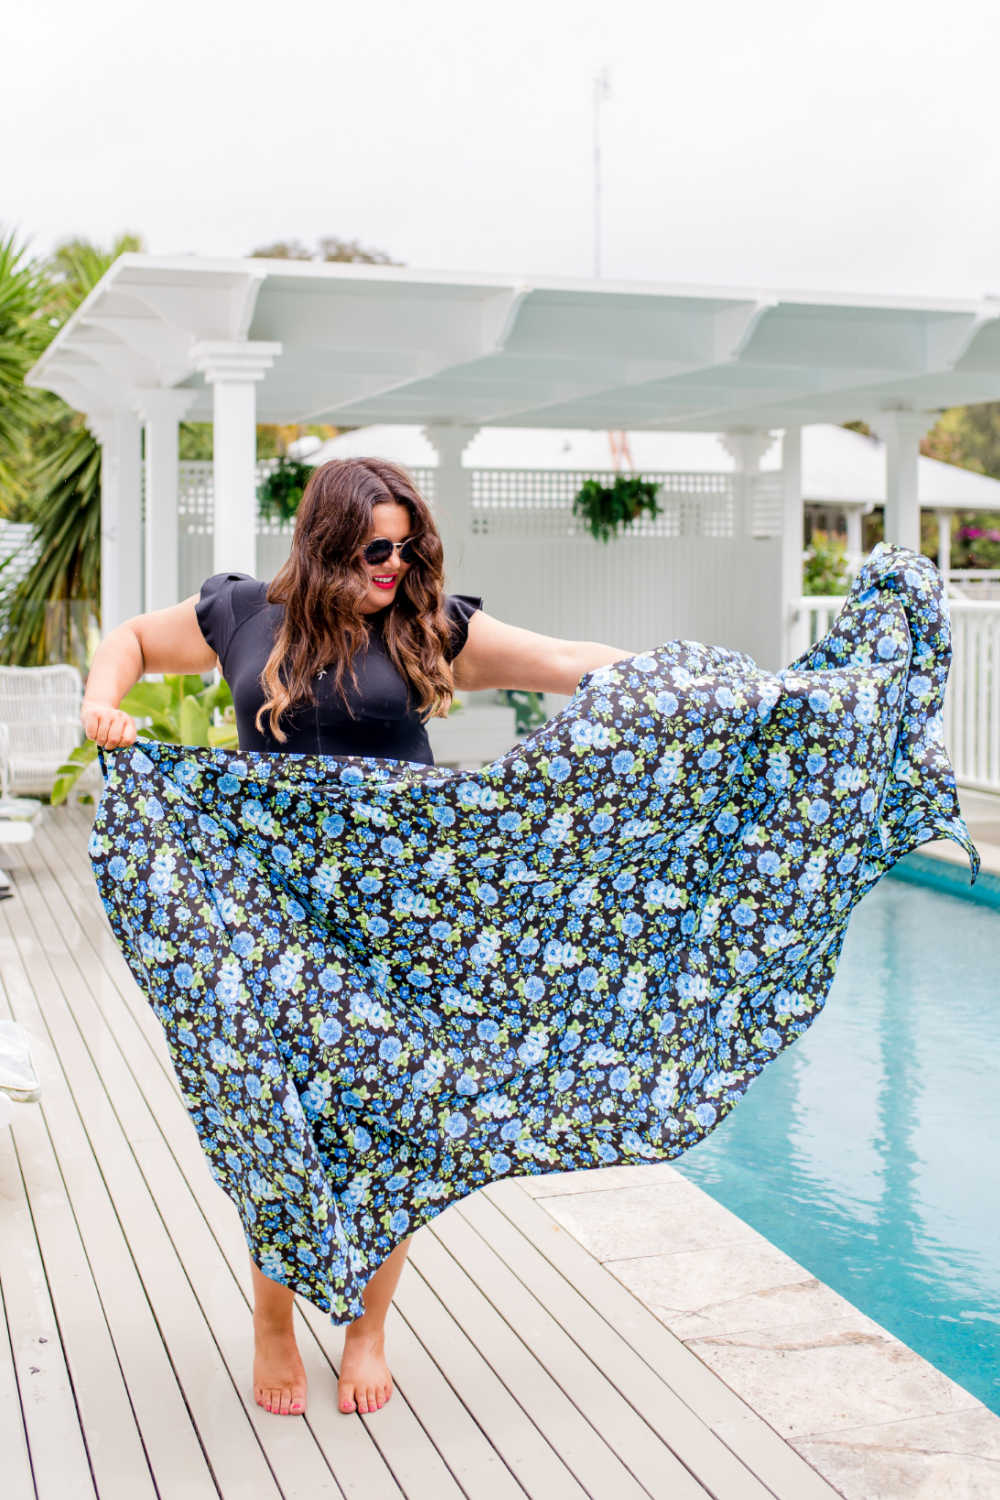 plus-size-floral-beach-sarong-blue-black